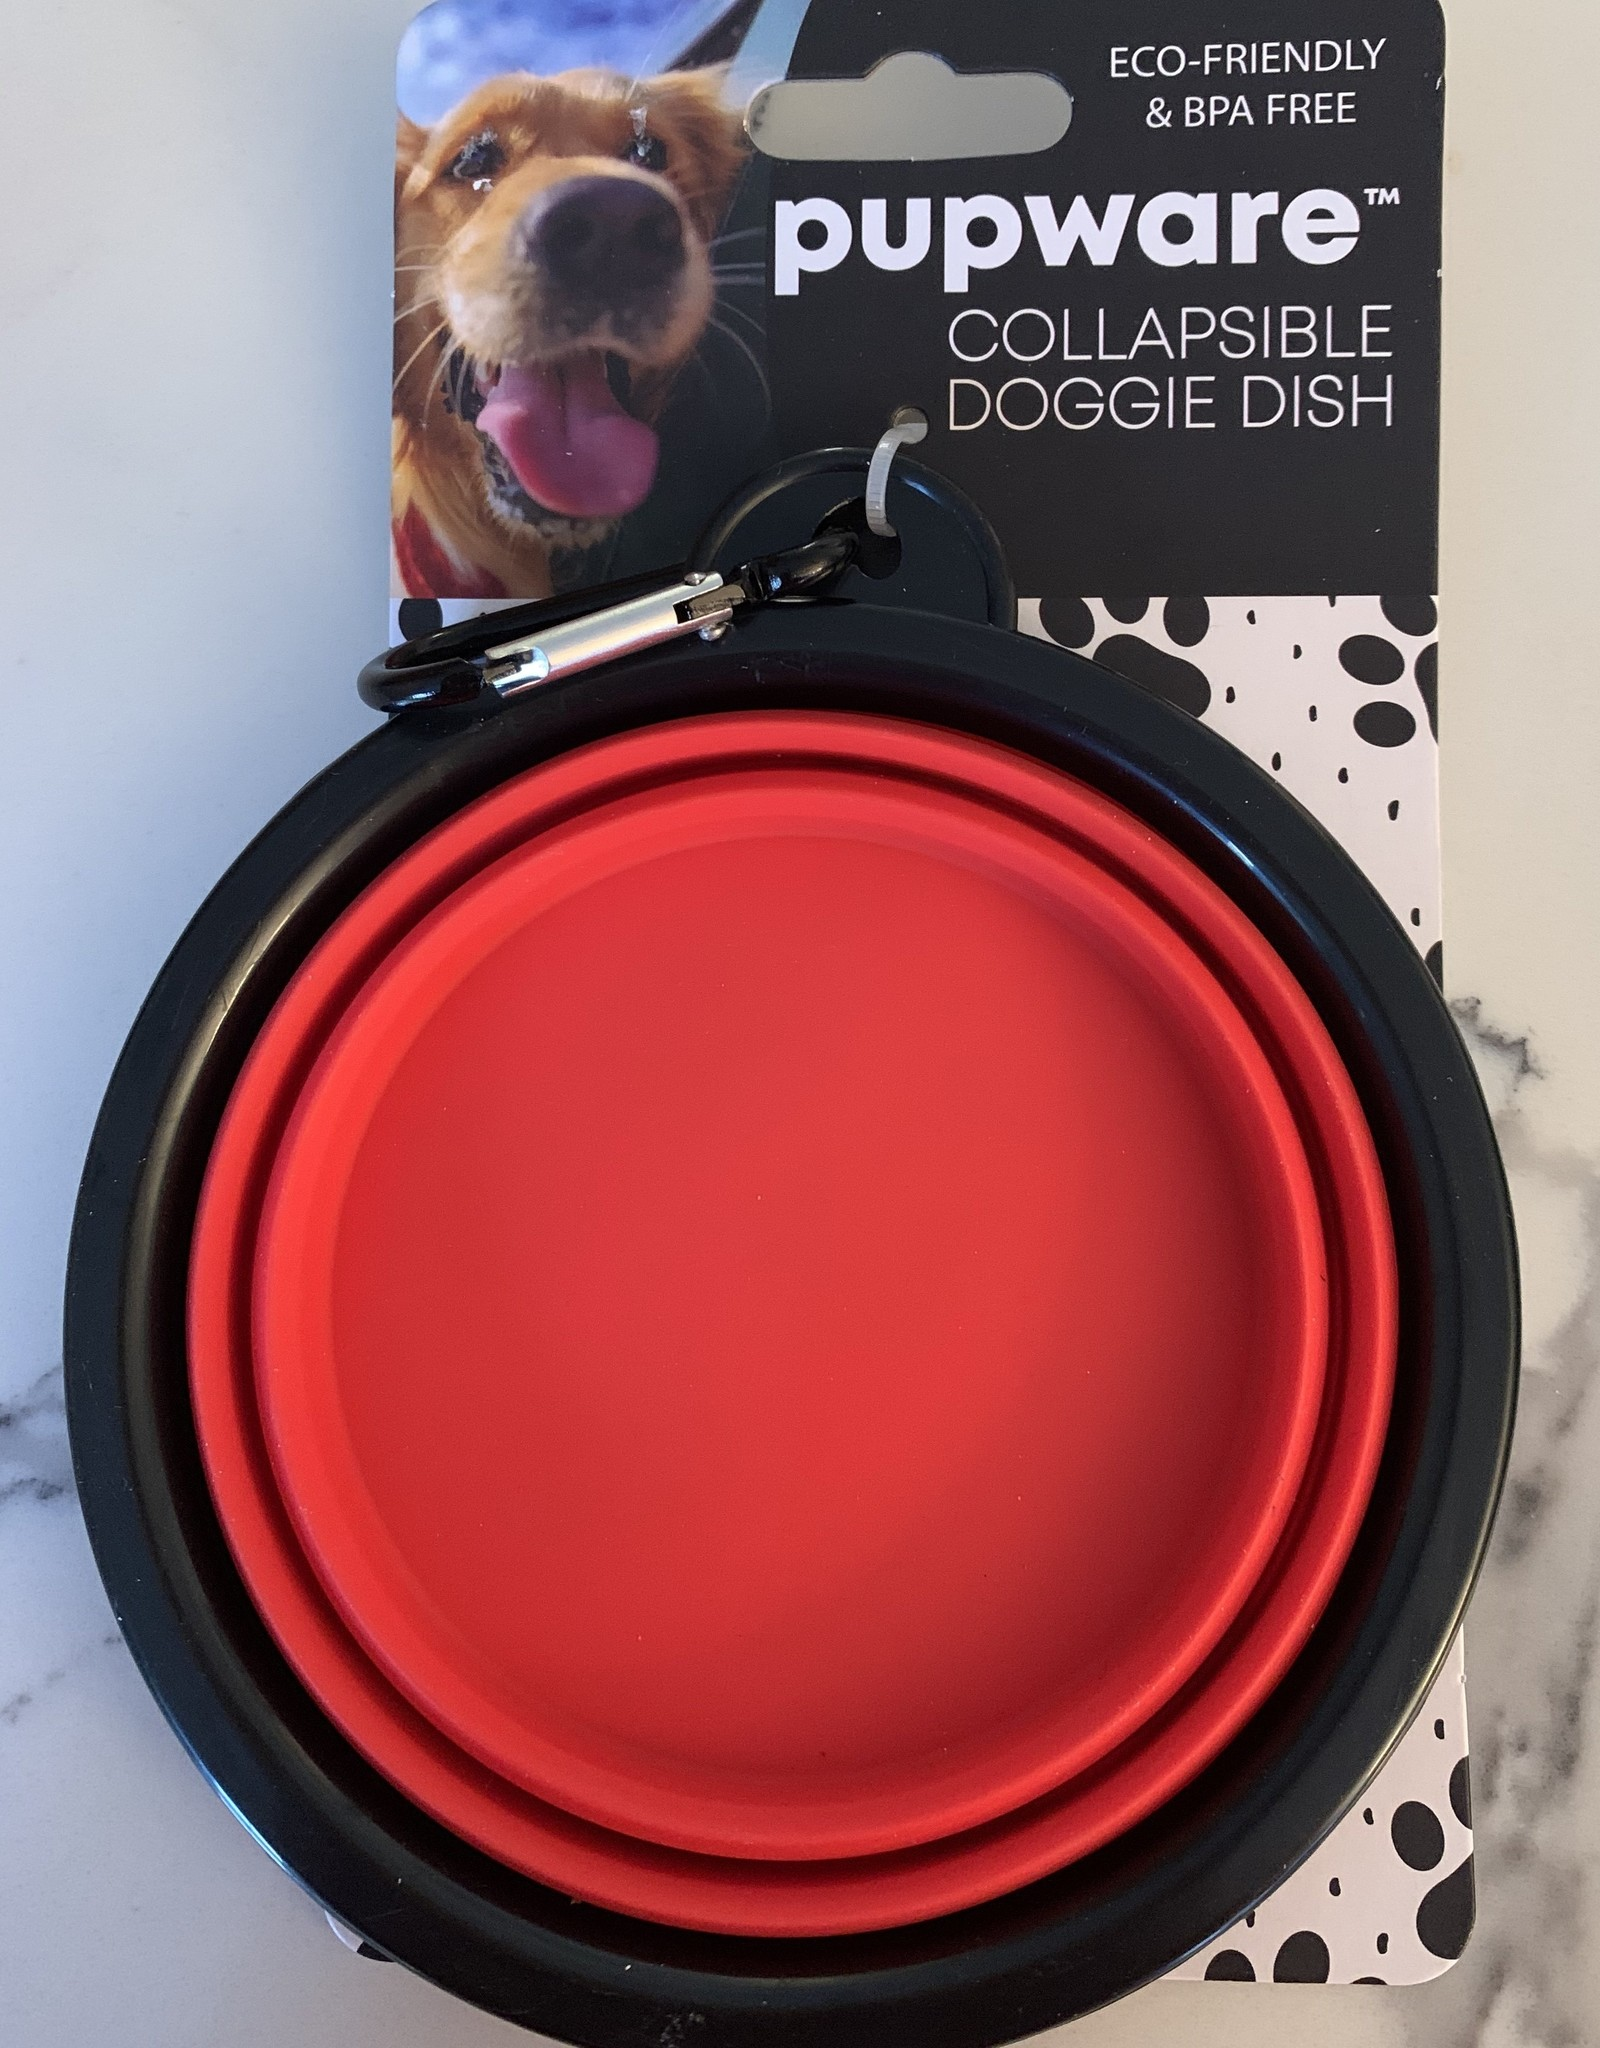 D.M. MERCHANDISING INC. Collapsible Doggie Dish